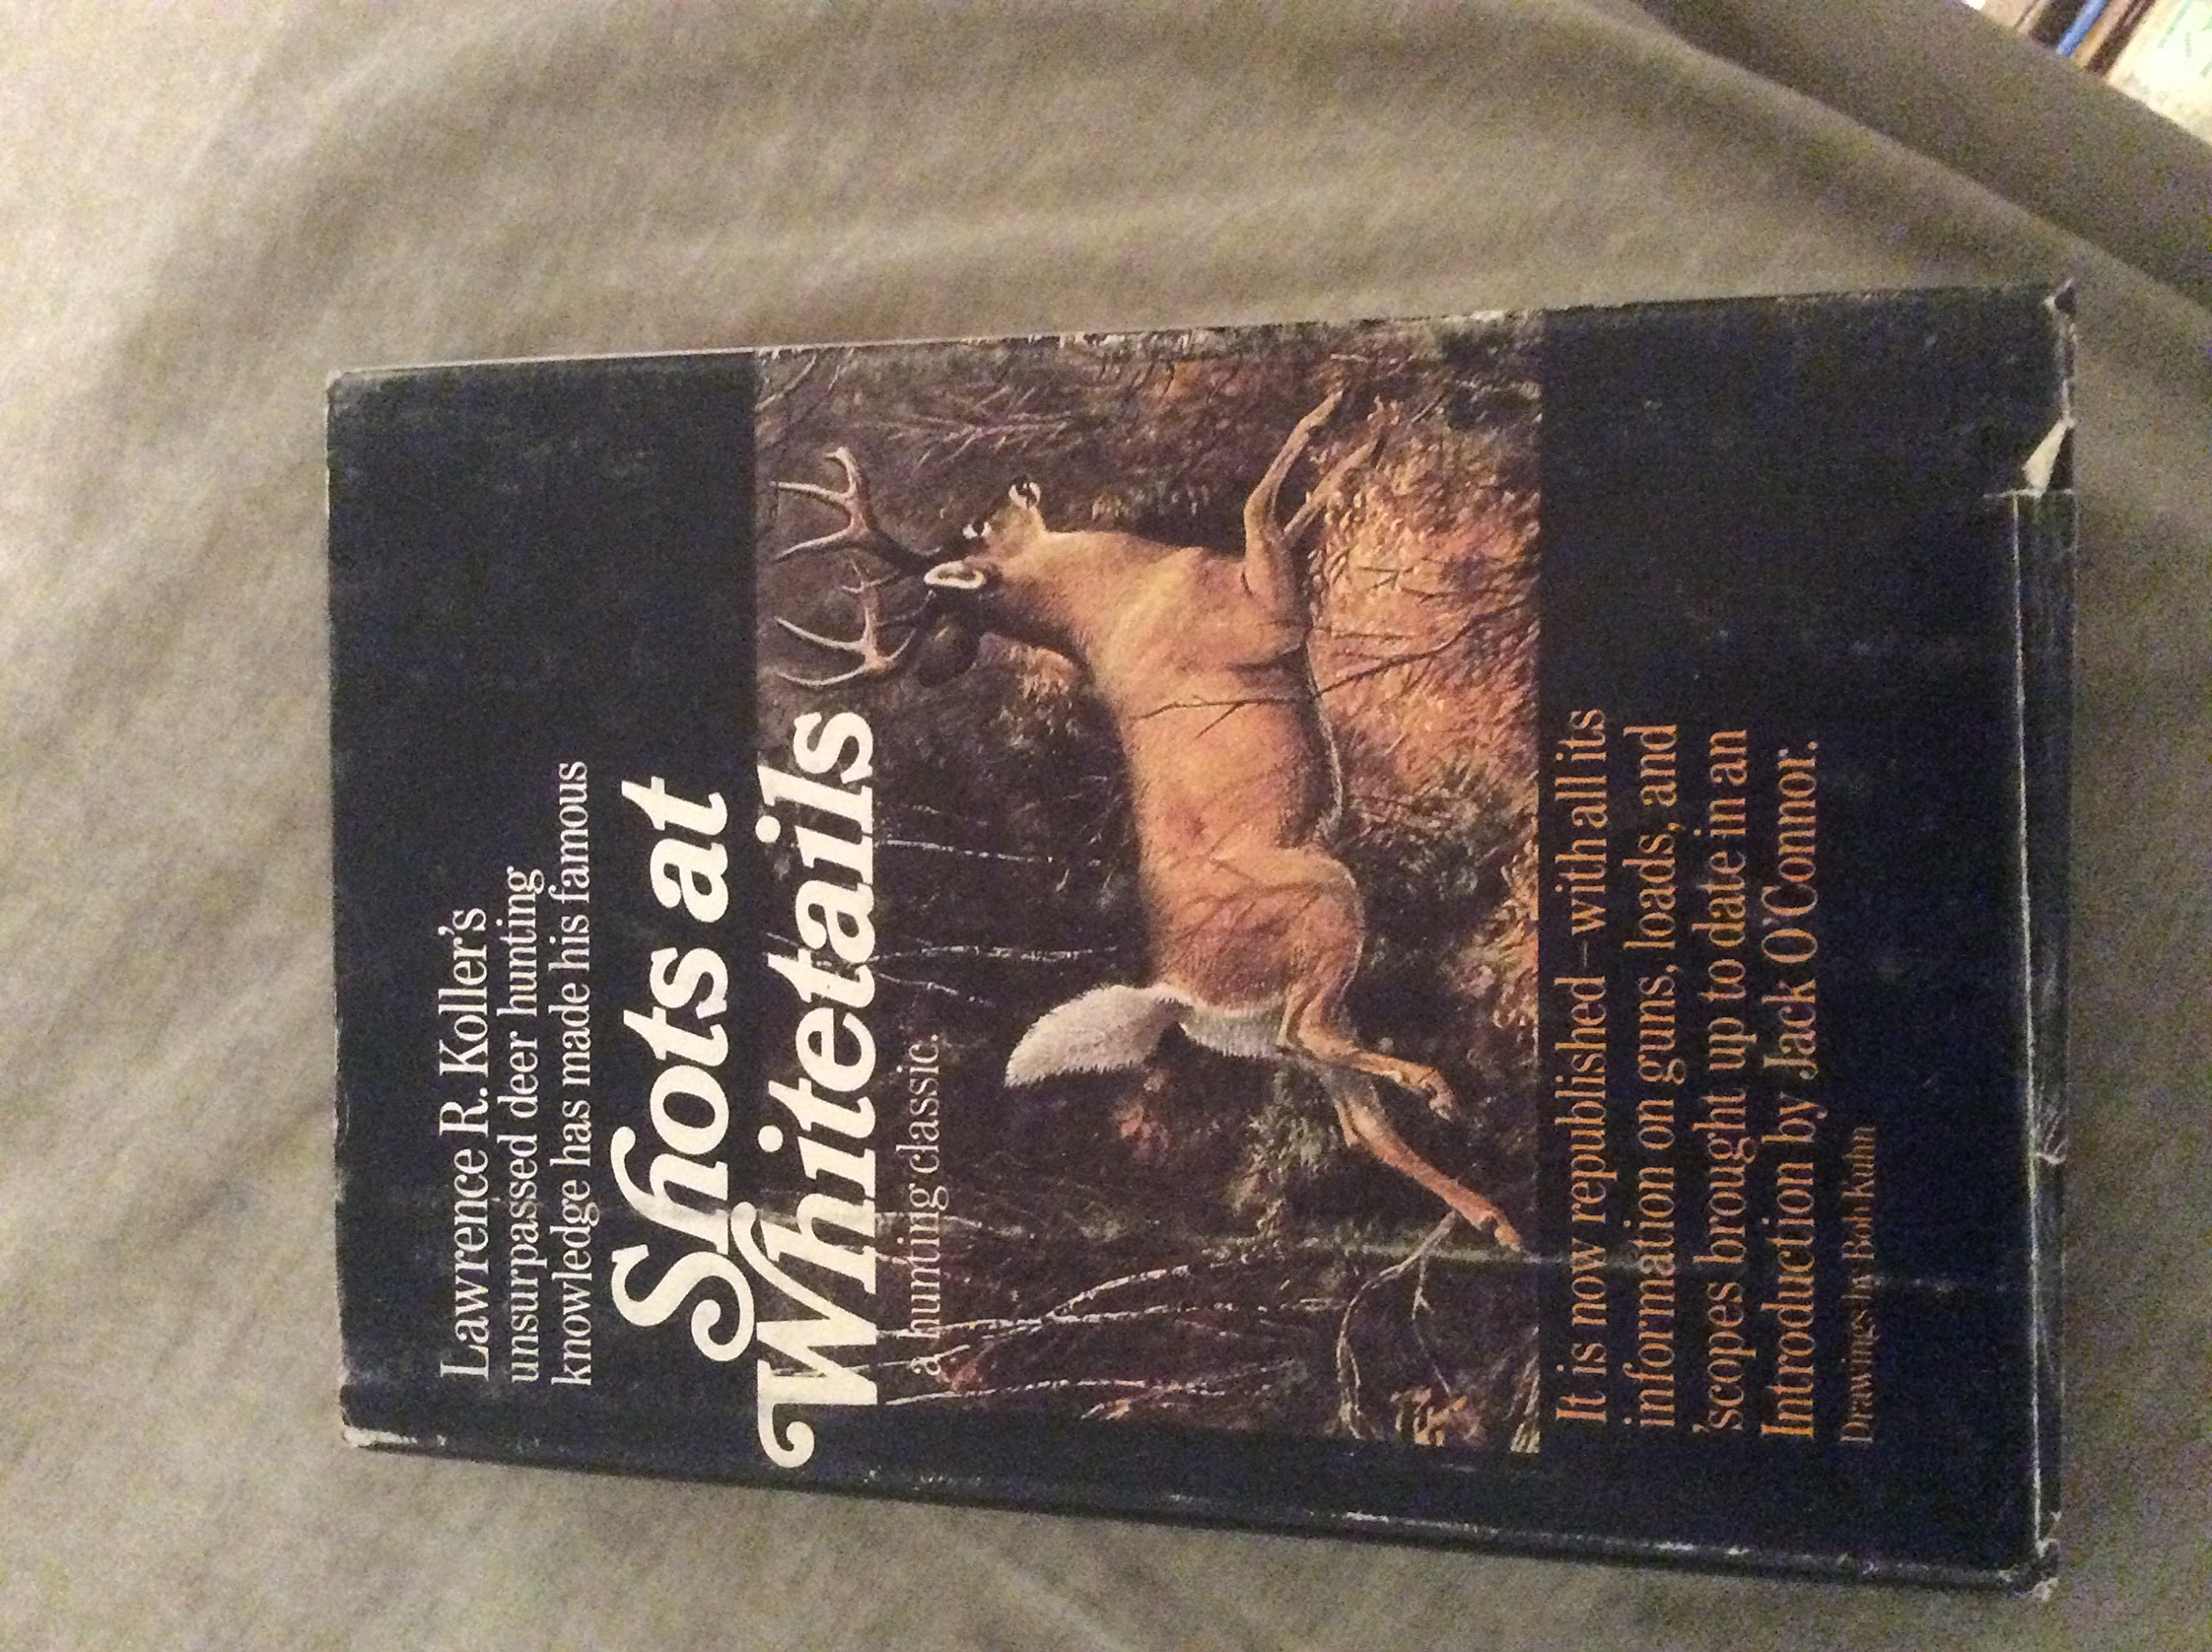 Shots At Whitetails A Hunting Classic Lawrence R Koller Jack O To Shoot Deer With Rifle Diagram I Have Two Of These Rifles And Oconnor Bob Kuhn Books